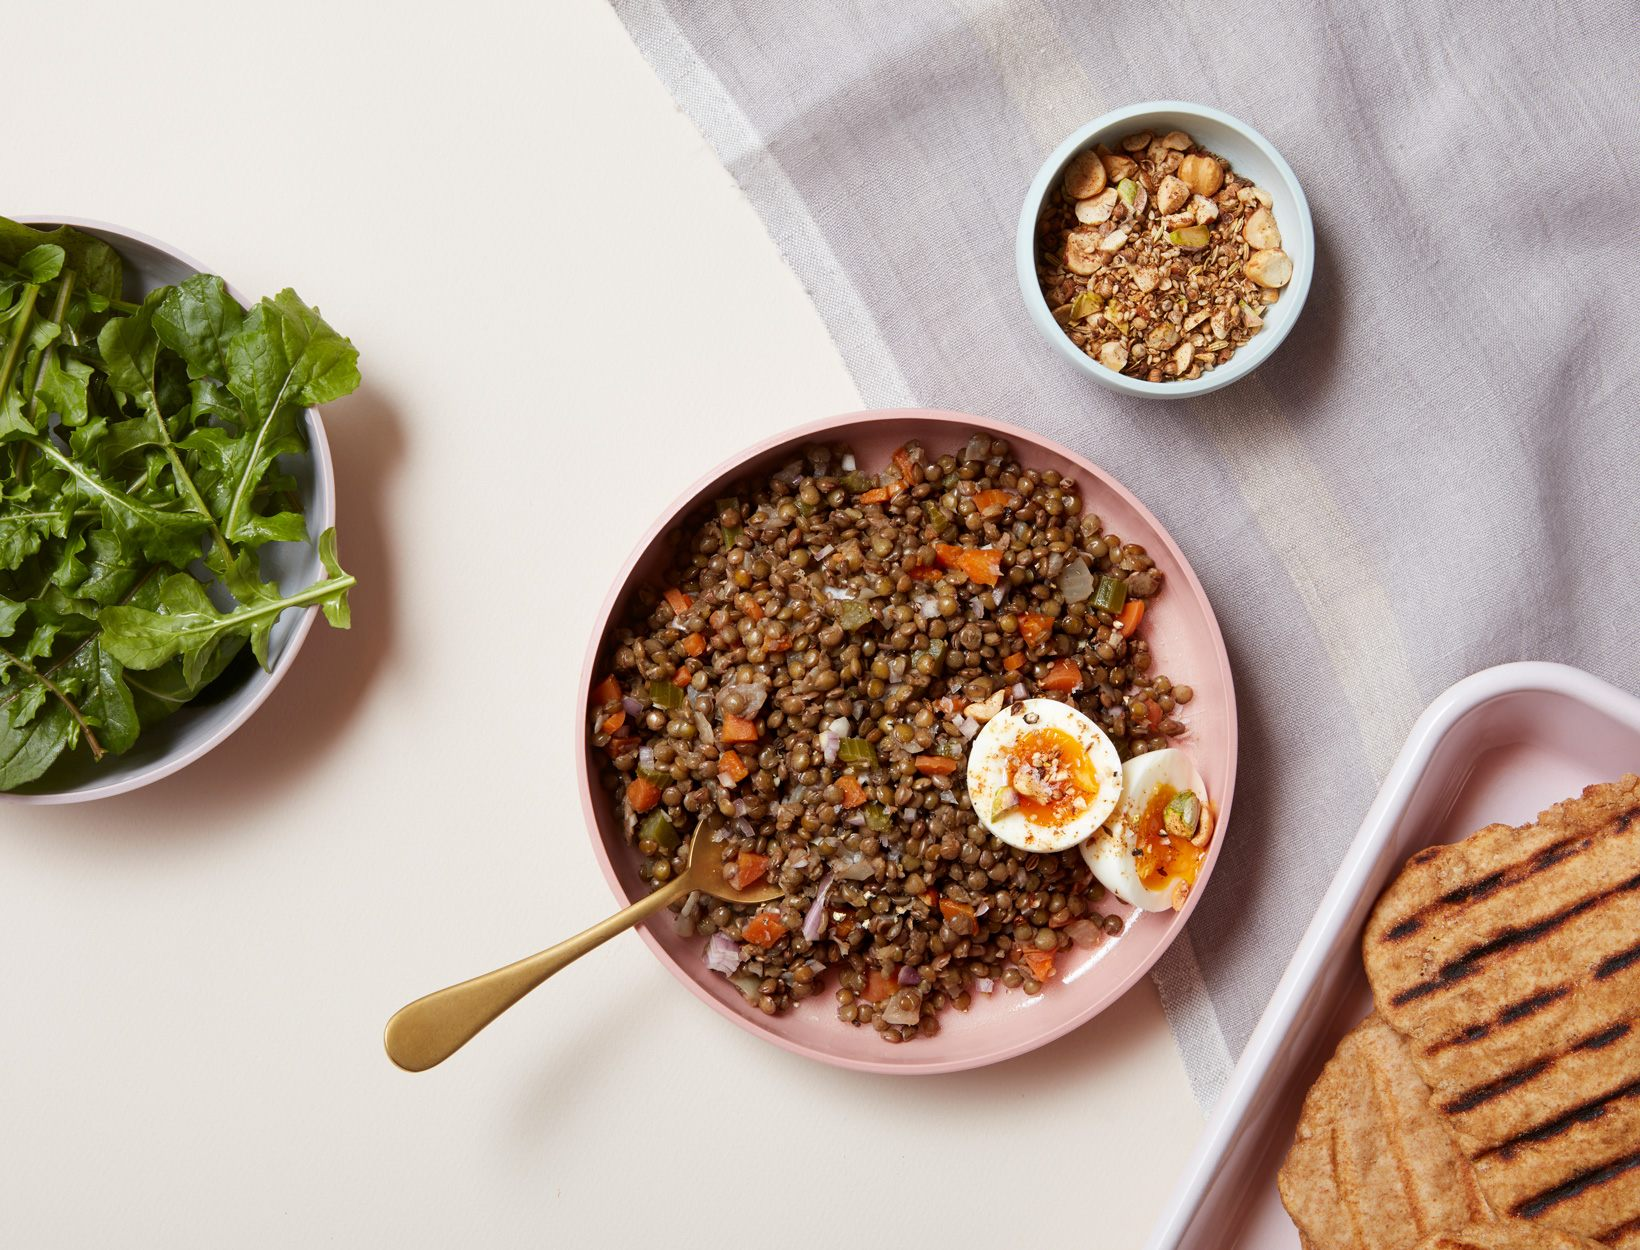 French Lentils, Soft Egg, and Dukkah